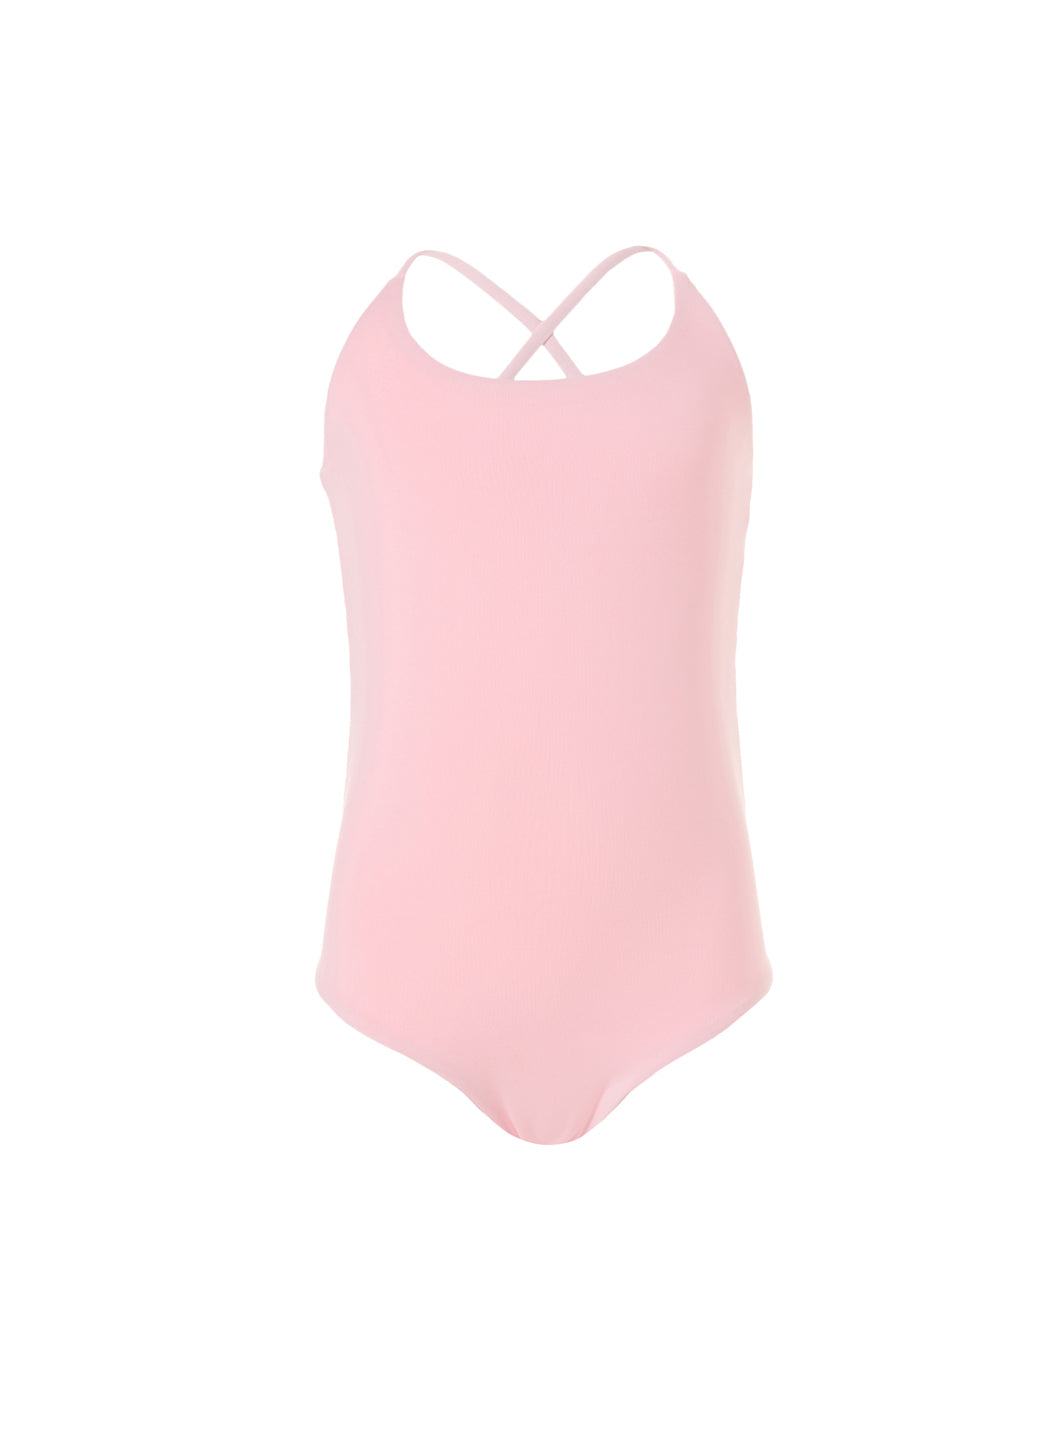 Baby Vicky Pale Pink /Neon Cross-Back One Piece Swimsuit - Melissa Odabash Kids Swimsuits